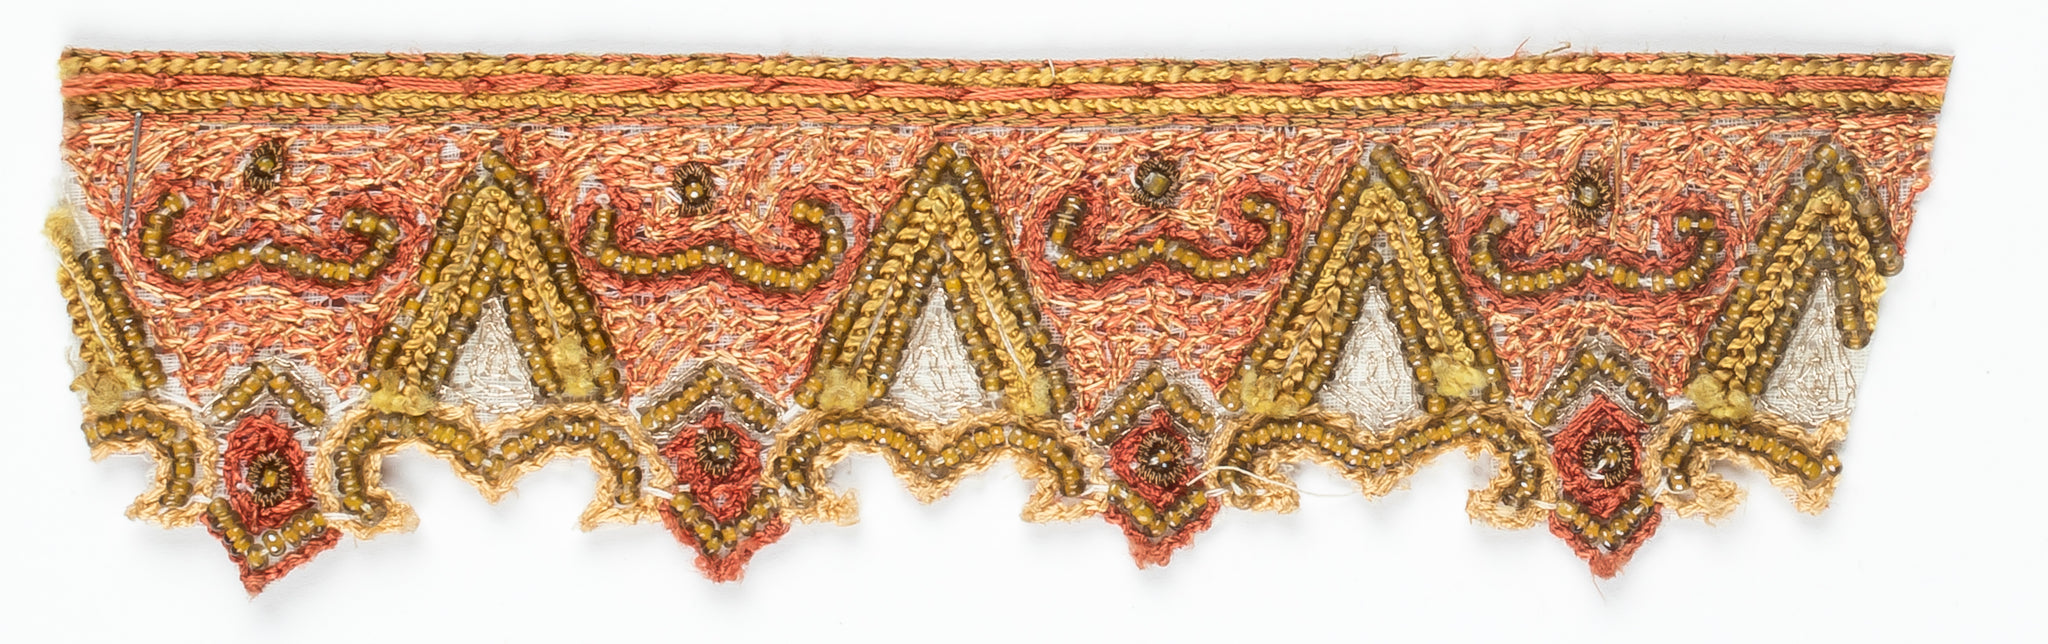 Hand Beaded Sew-on Indian Trim